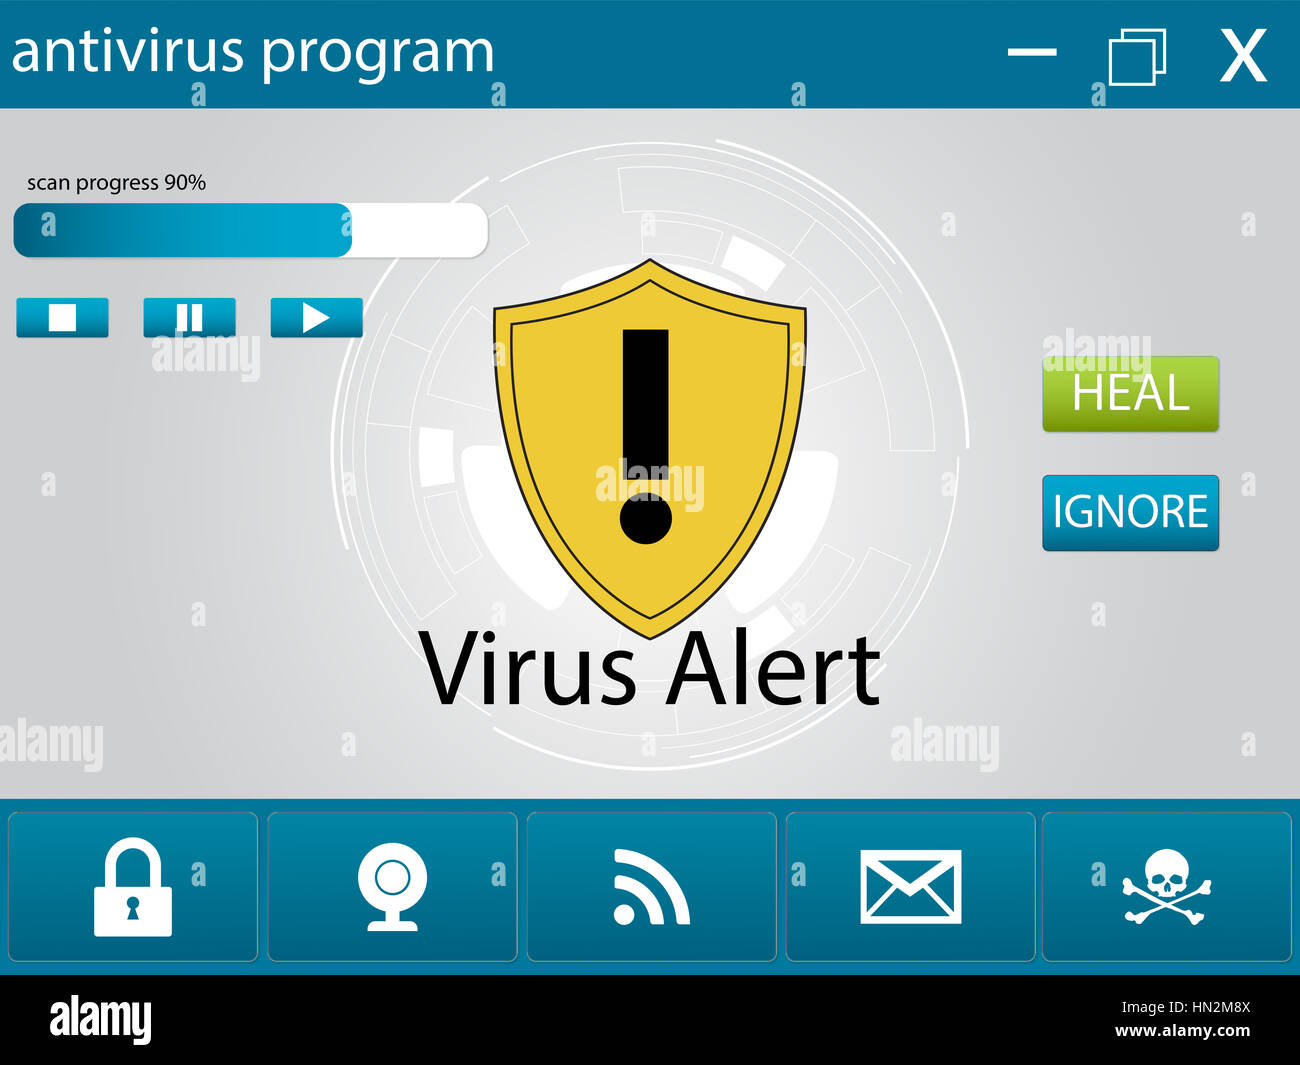 computer antivirus program - Stock Image